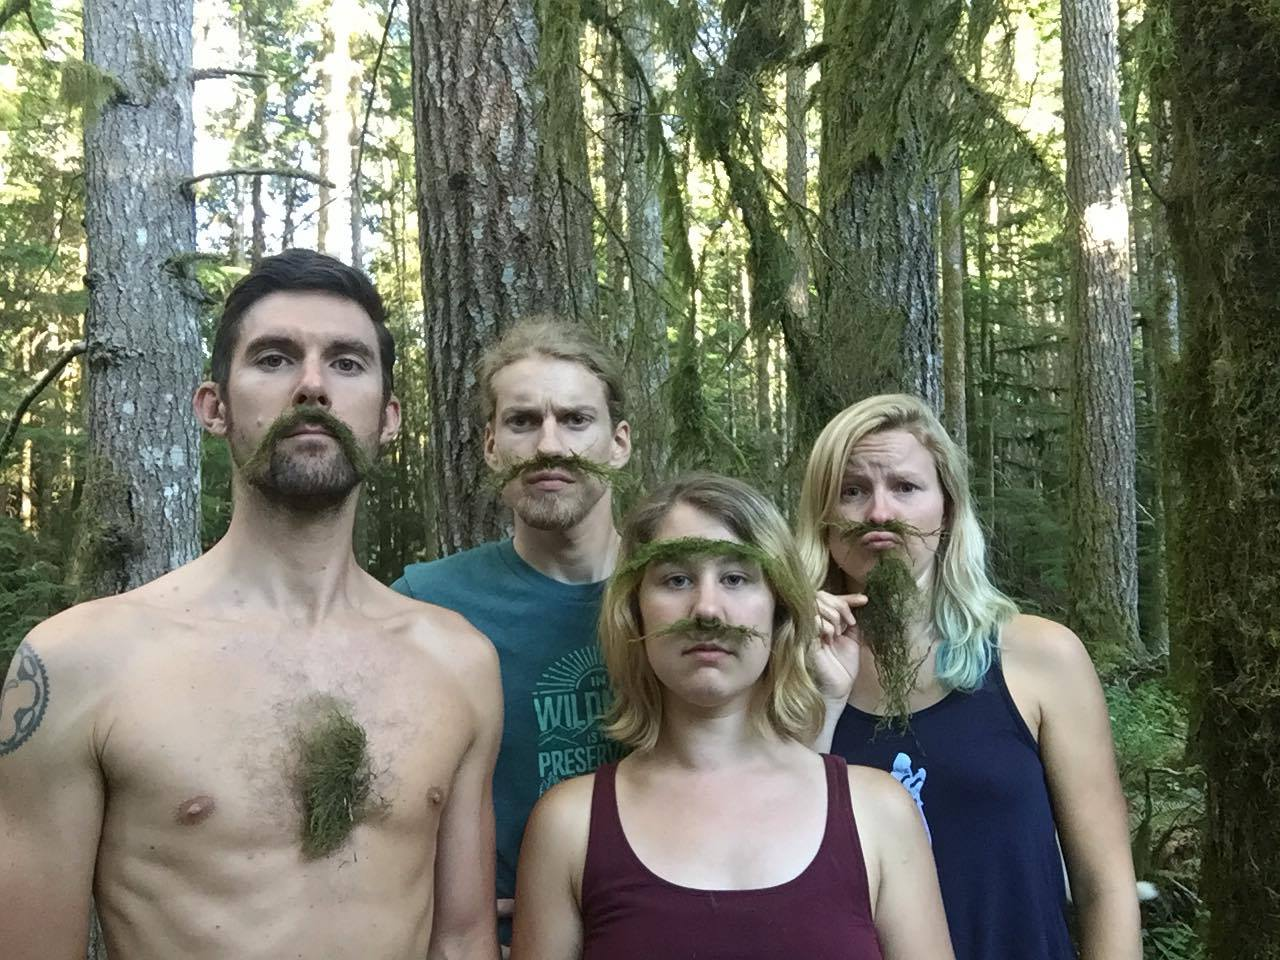 the we are wildness team making funny faces in the forest with old man's beard that we found blown onto the ground